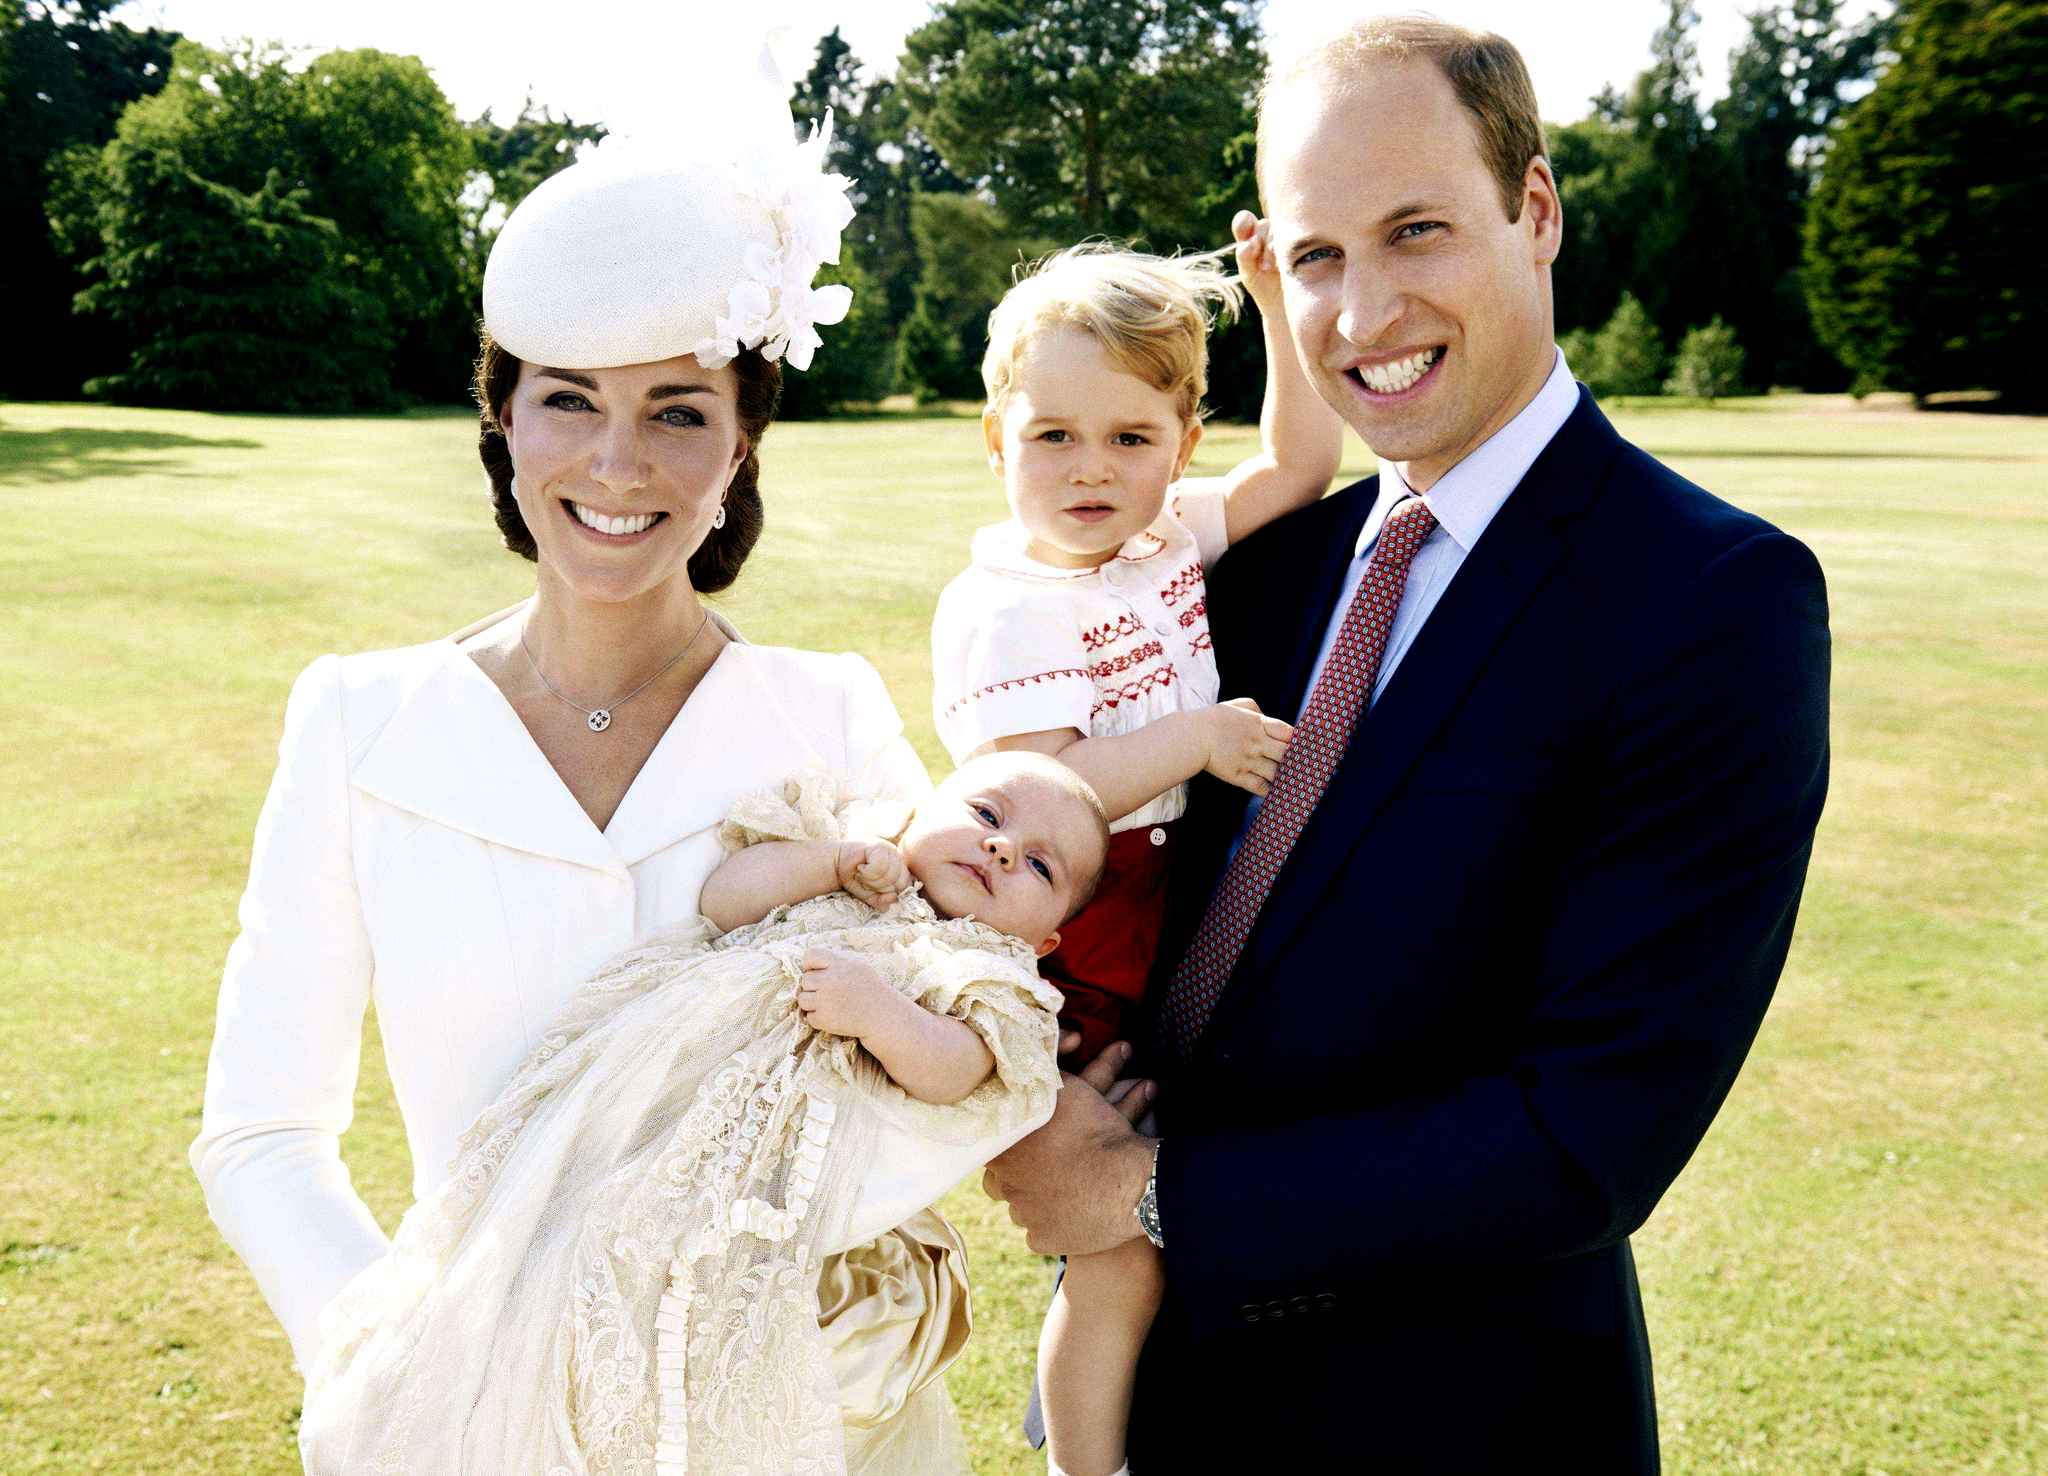 Prince William facts